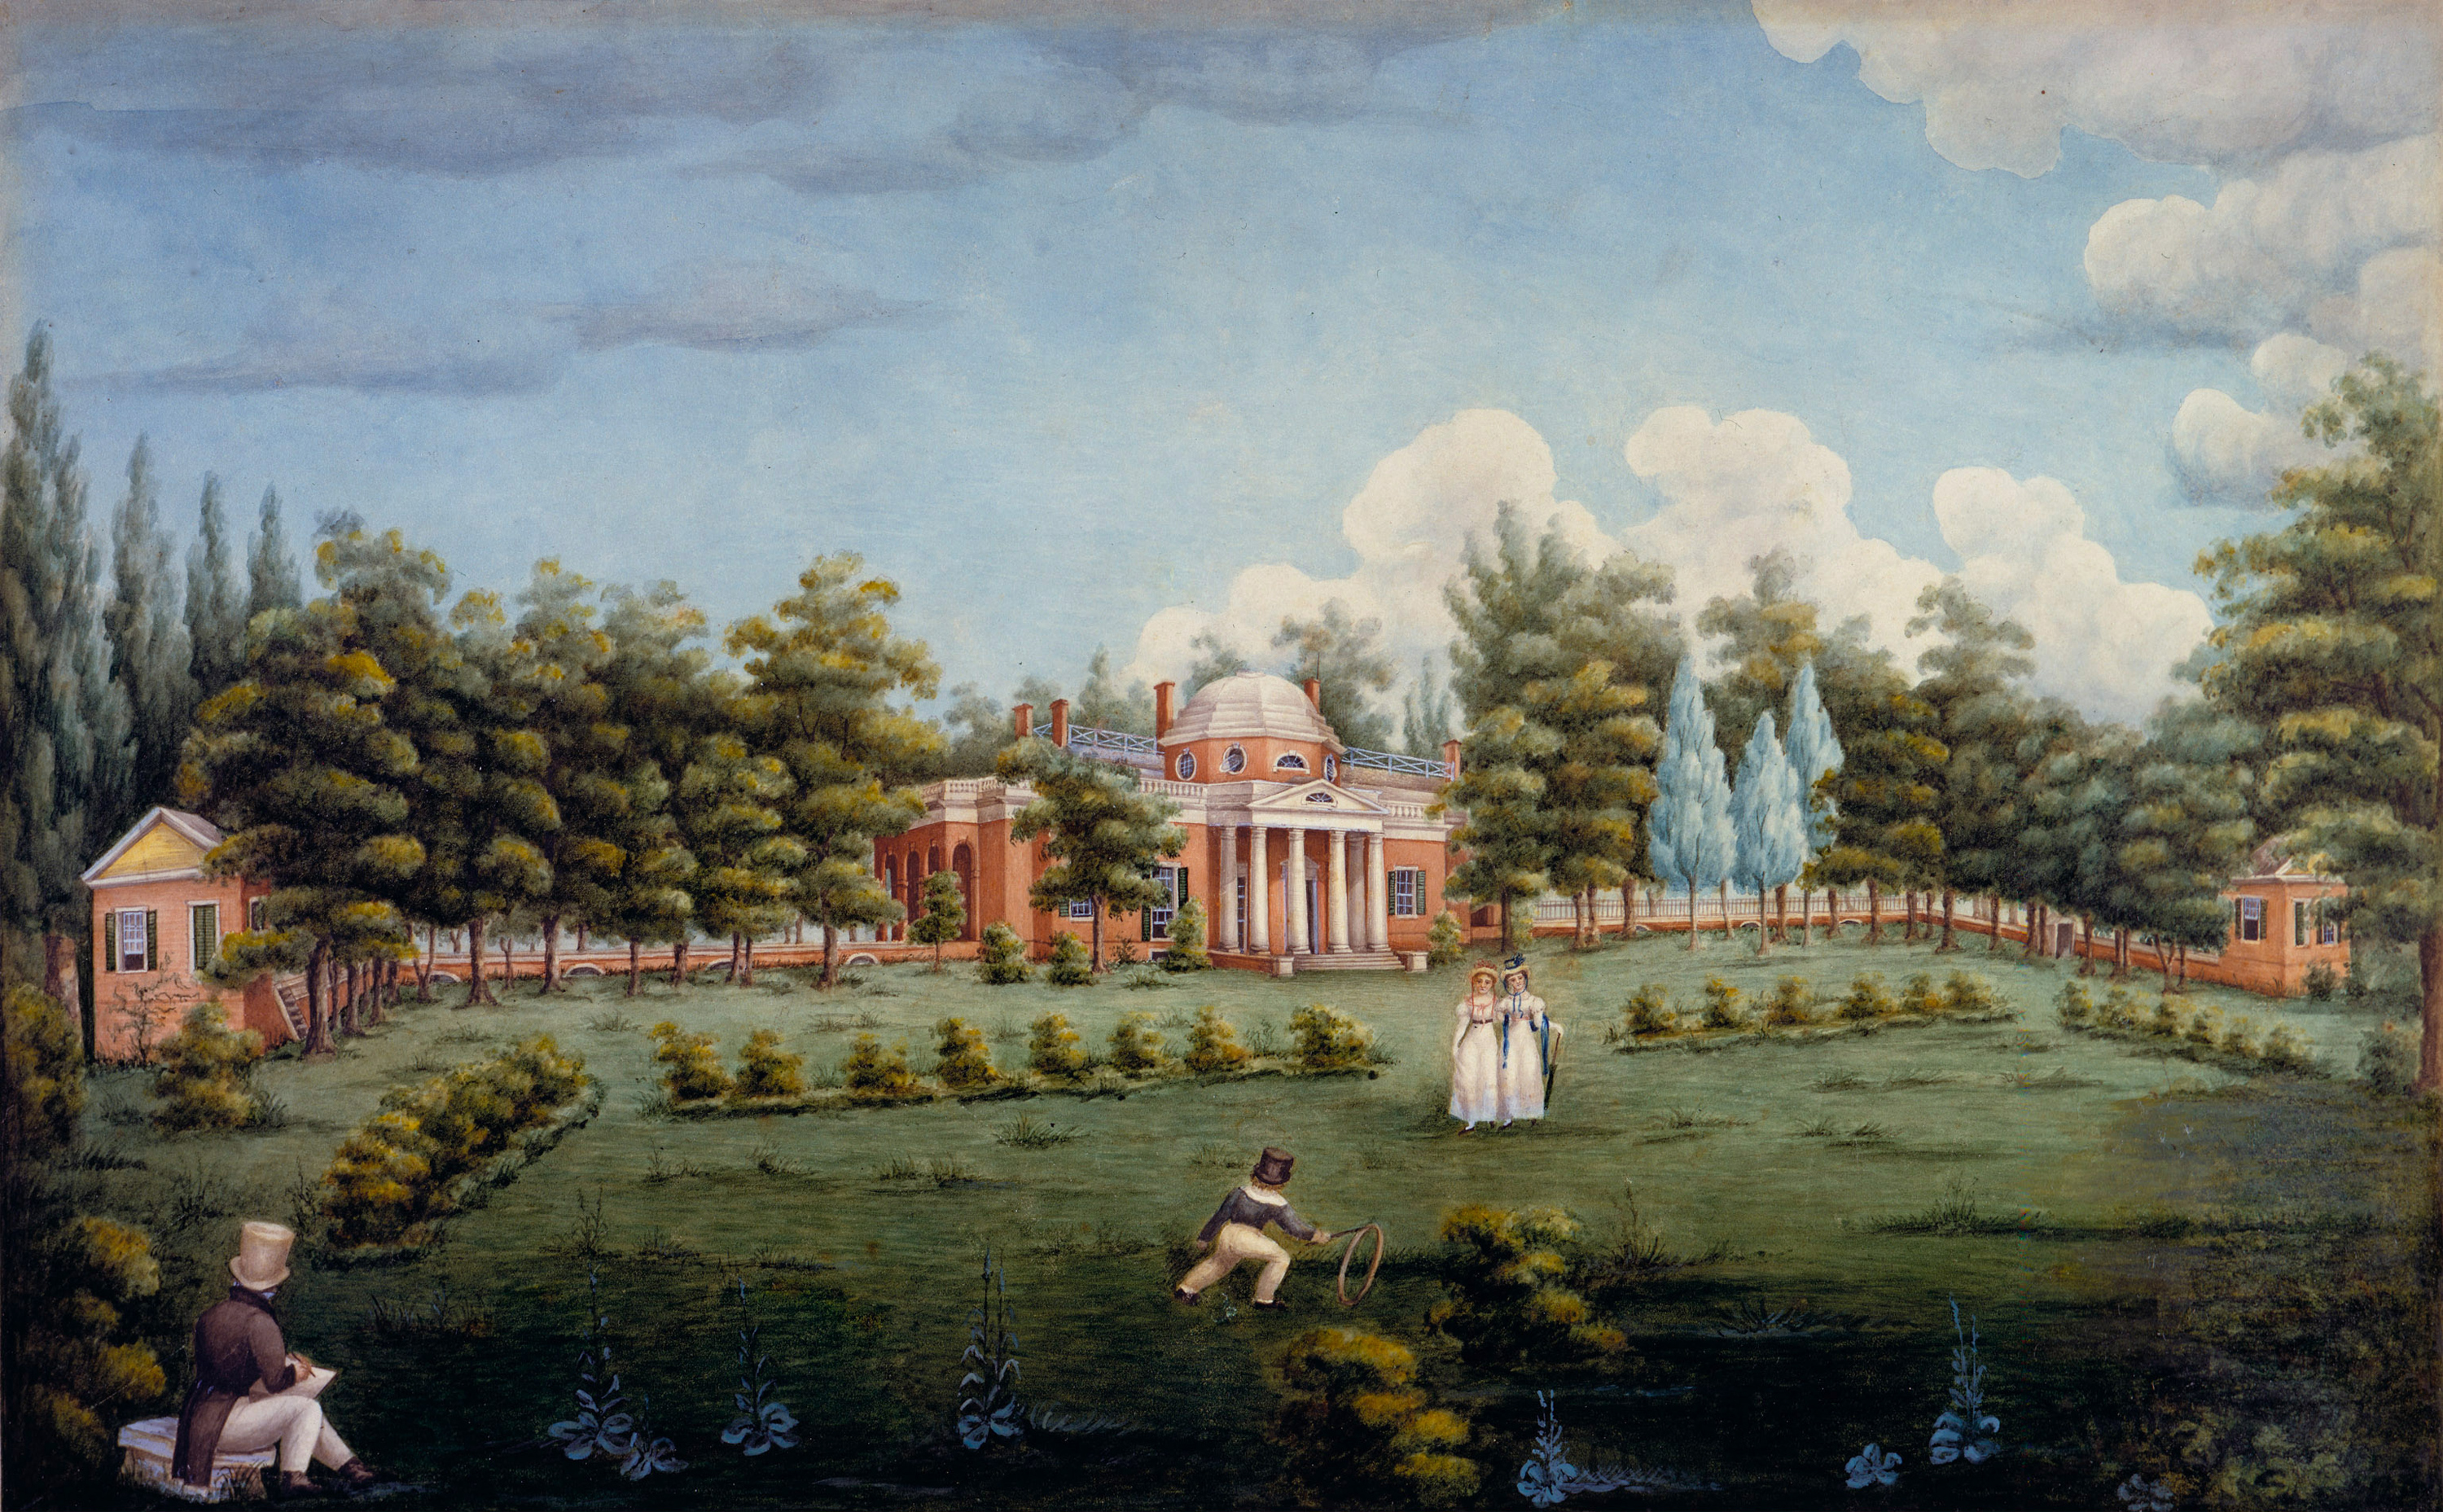 Watercolor View of the West Front of Monticello and Garden (1825) by Jane Braddick. Peticolas. The children are Thomas Jefferson's grandchildren.